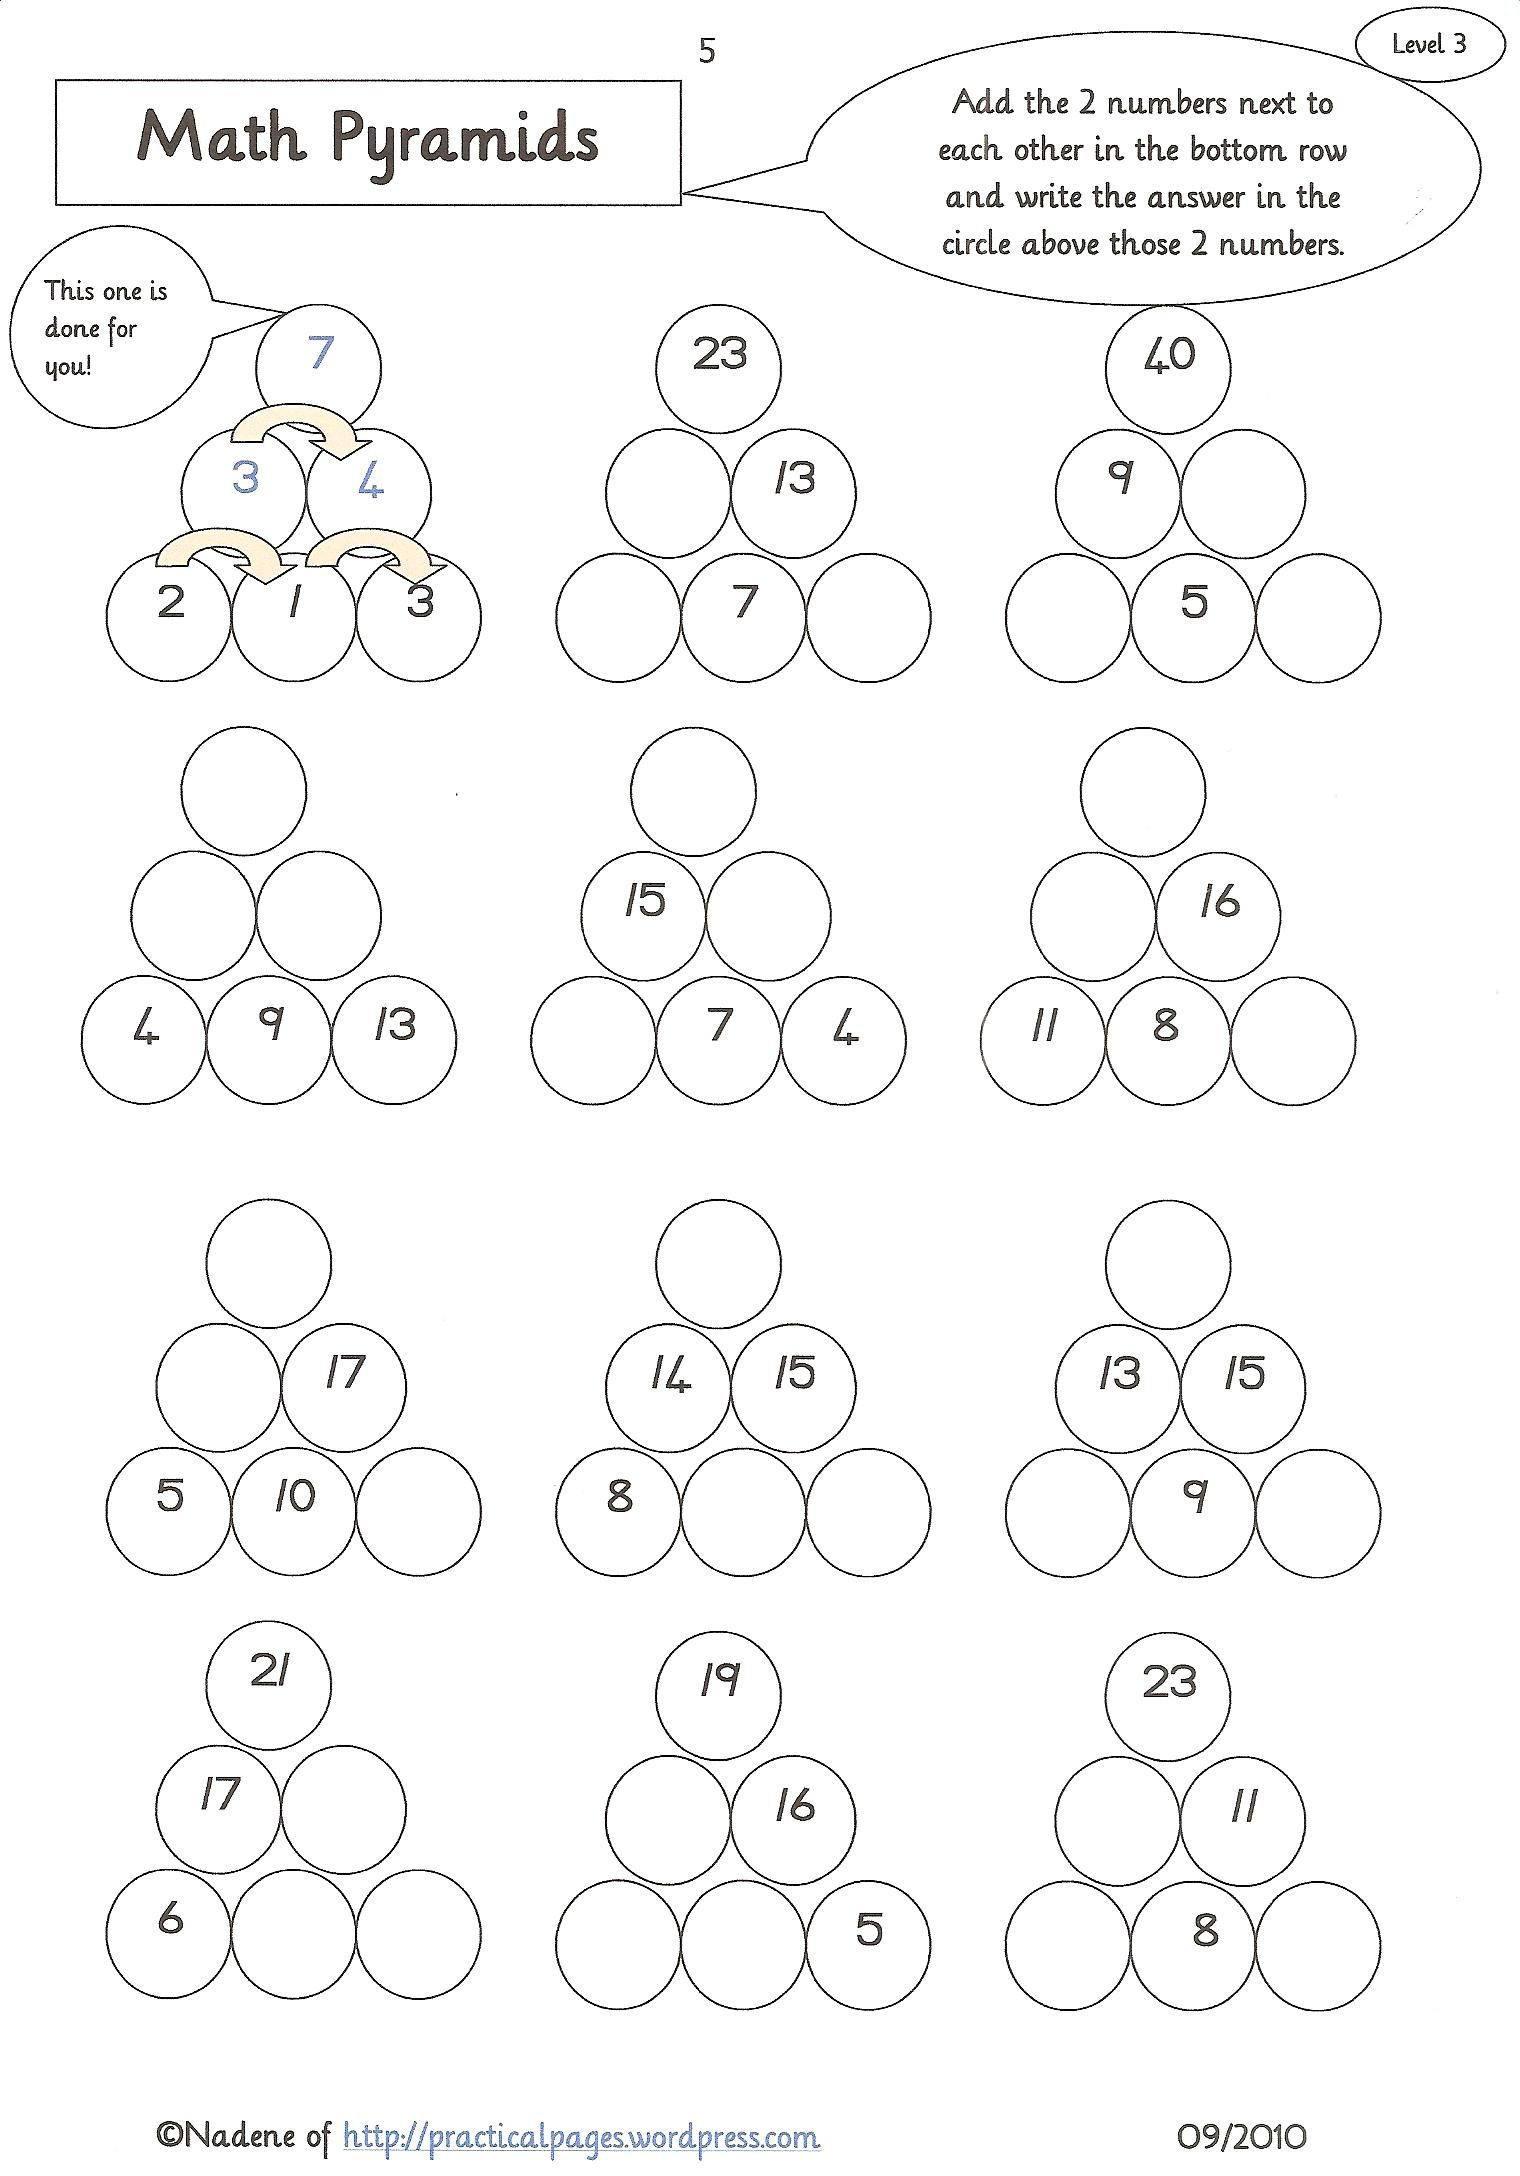 Maths Pyramids for Mental Maths Practice | Pinterest | Worksheets ...